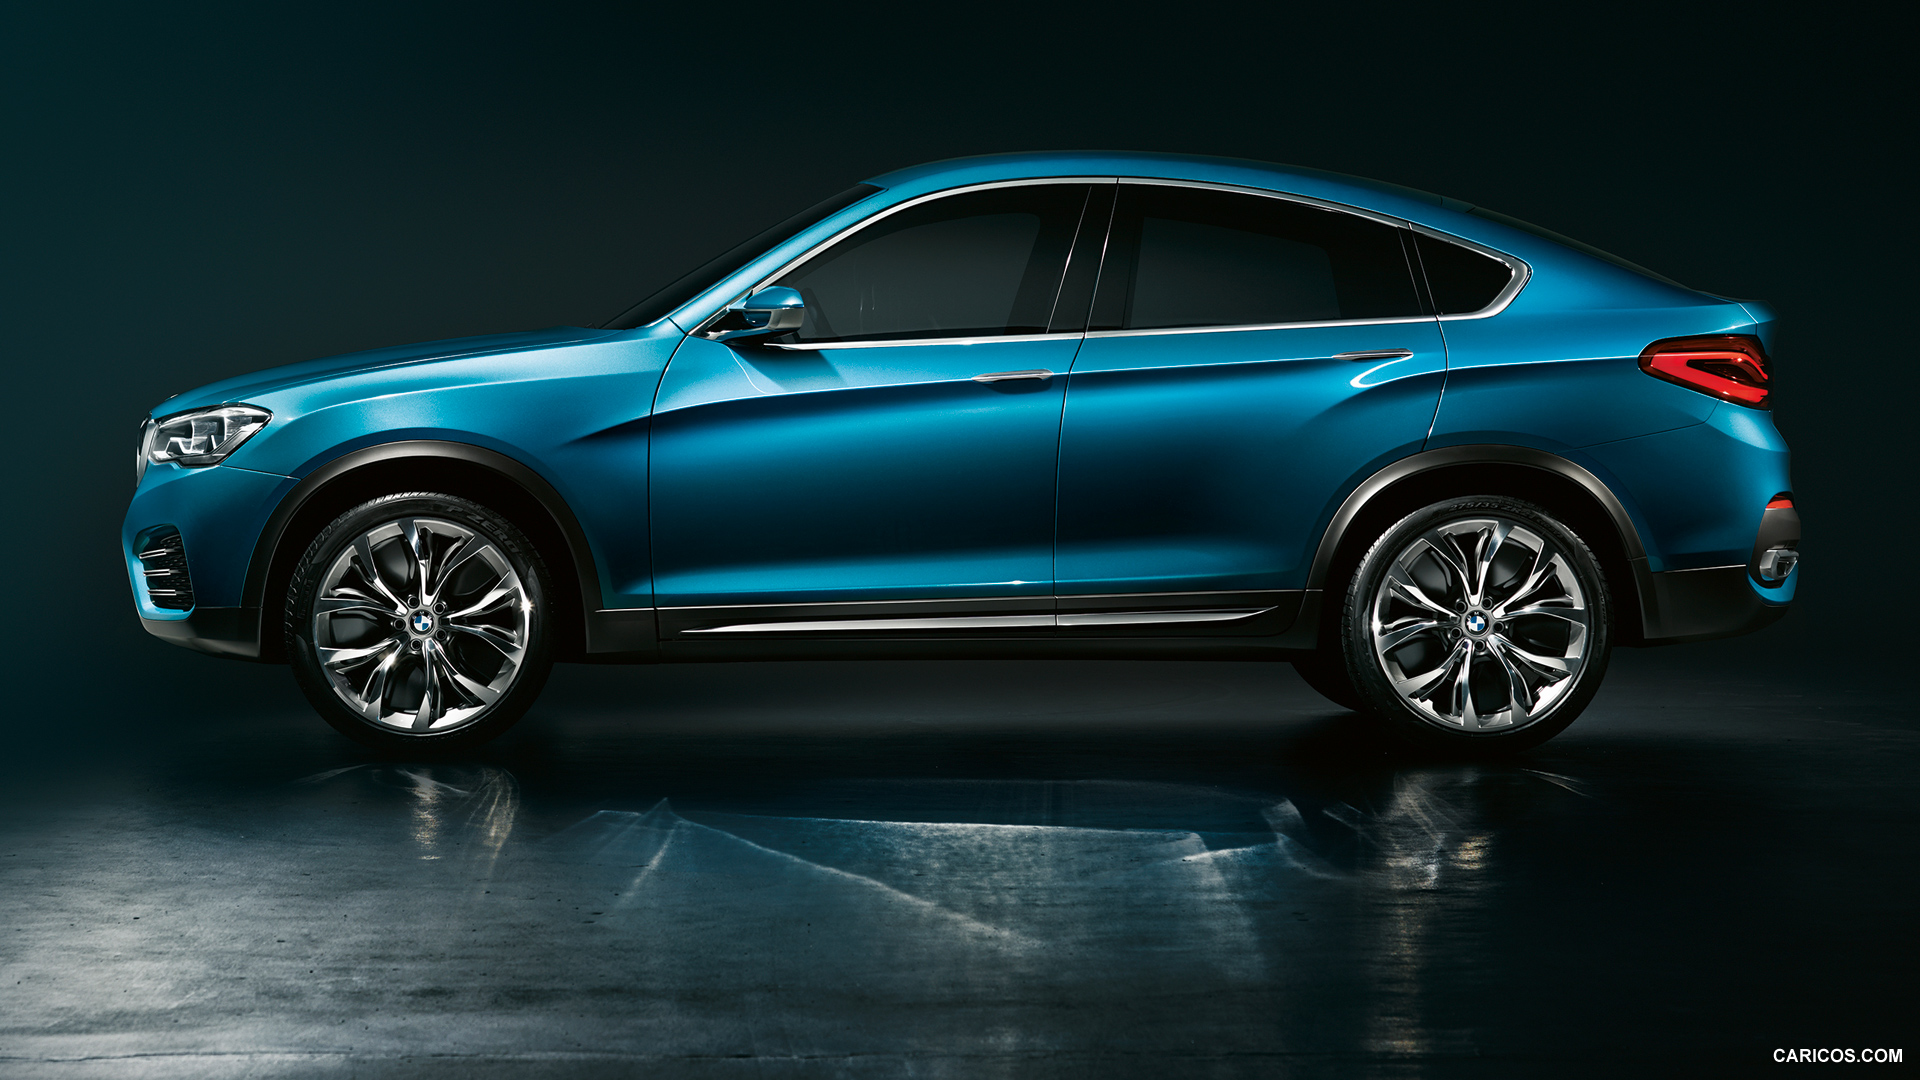 1920x1080 - BMW X4 Wallpapers 22